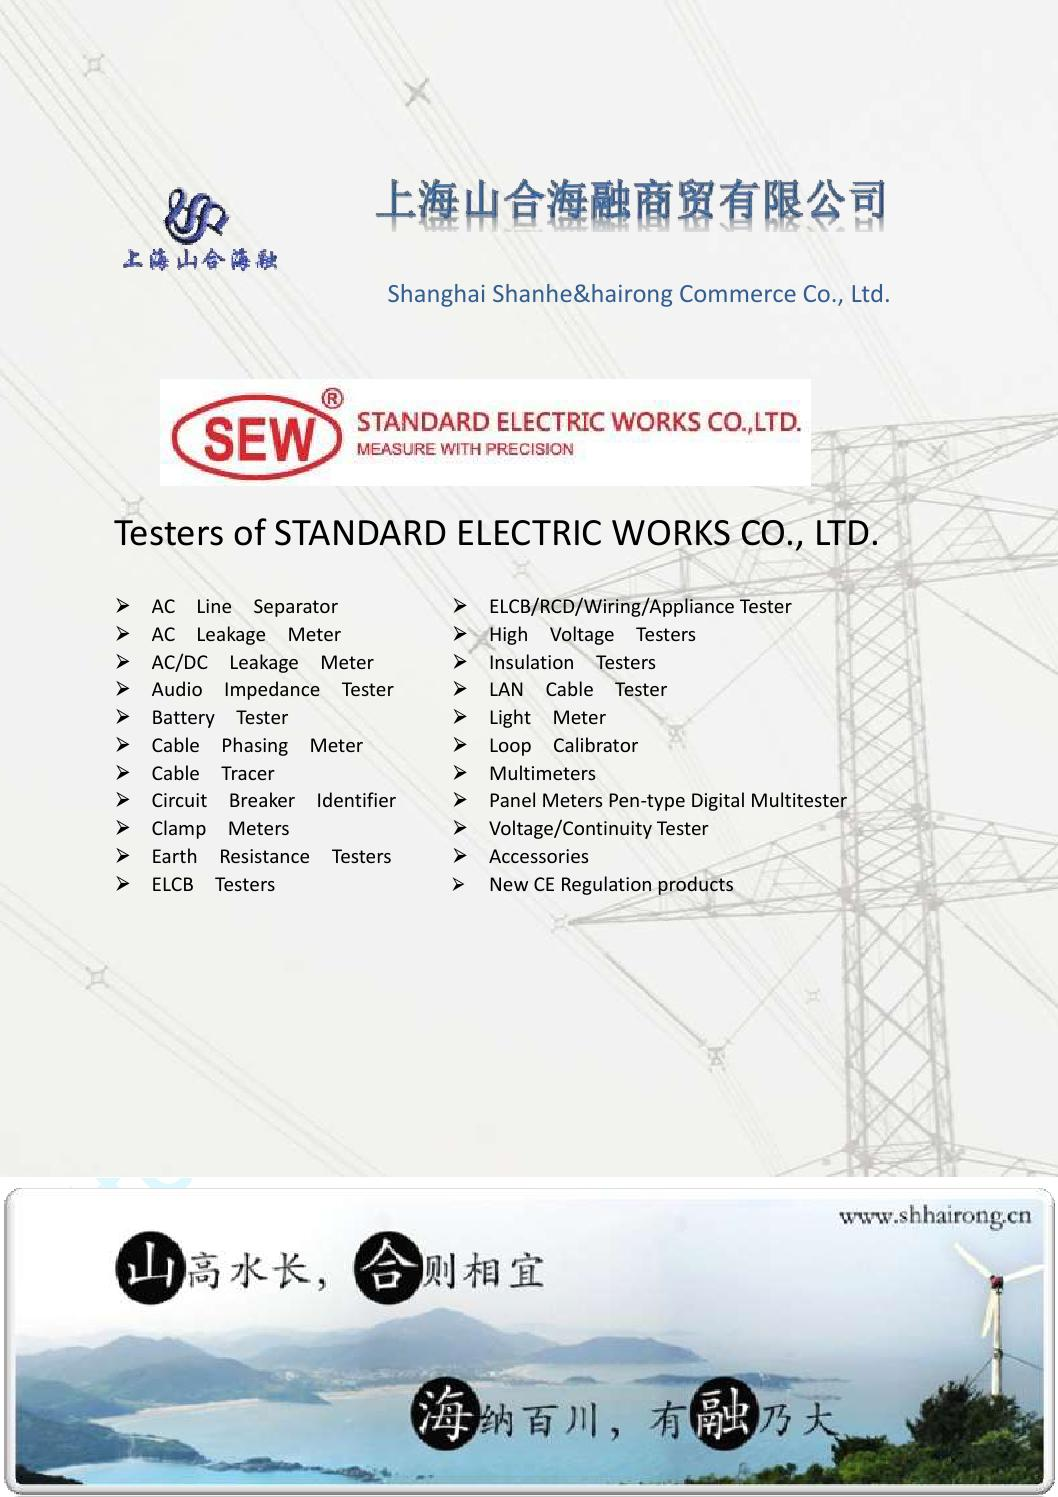 Sew By Shanghai 5000vdc Output From 230 Vac Input With Diode Voltage Multiplier Capacitor Shanhe Hairong Issuu